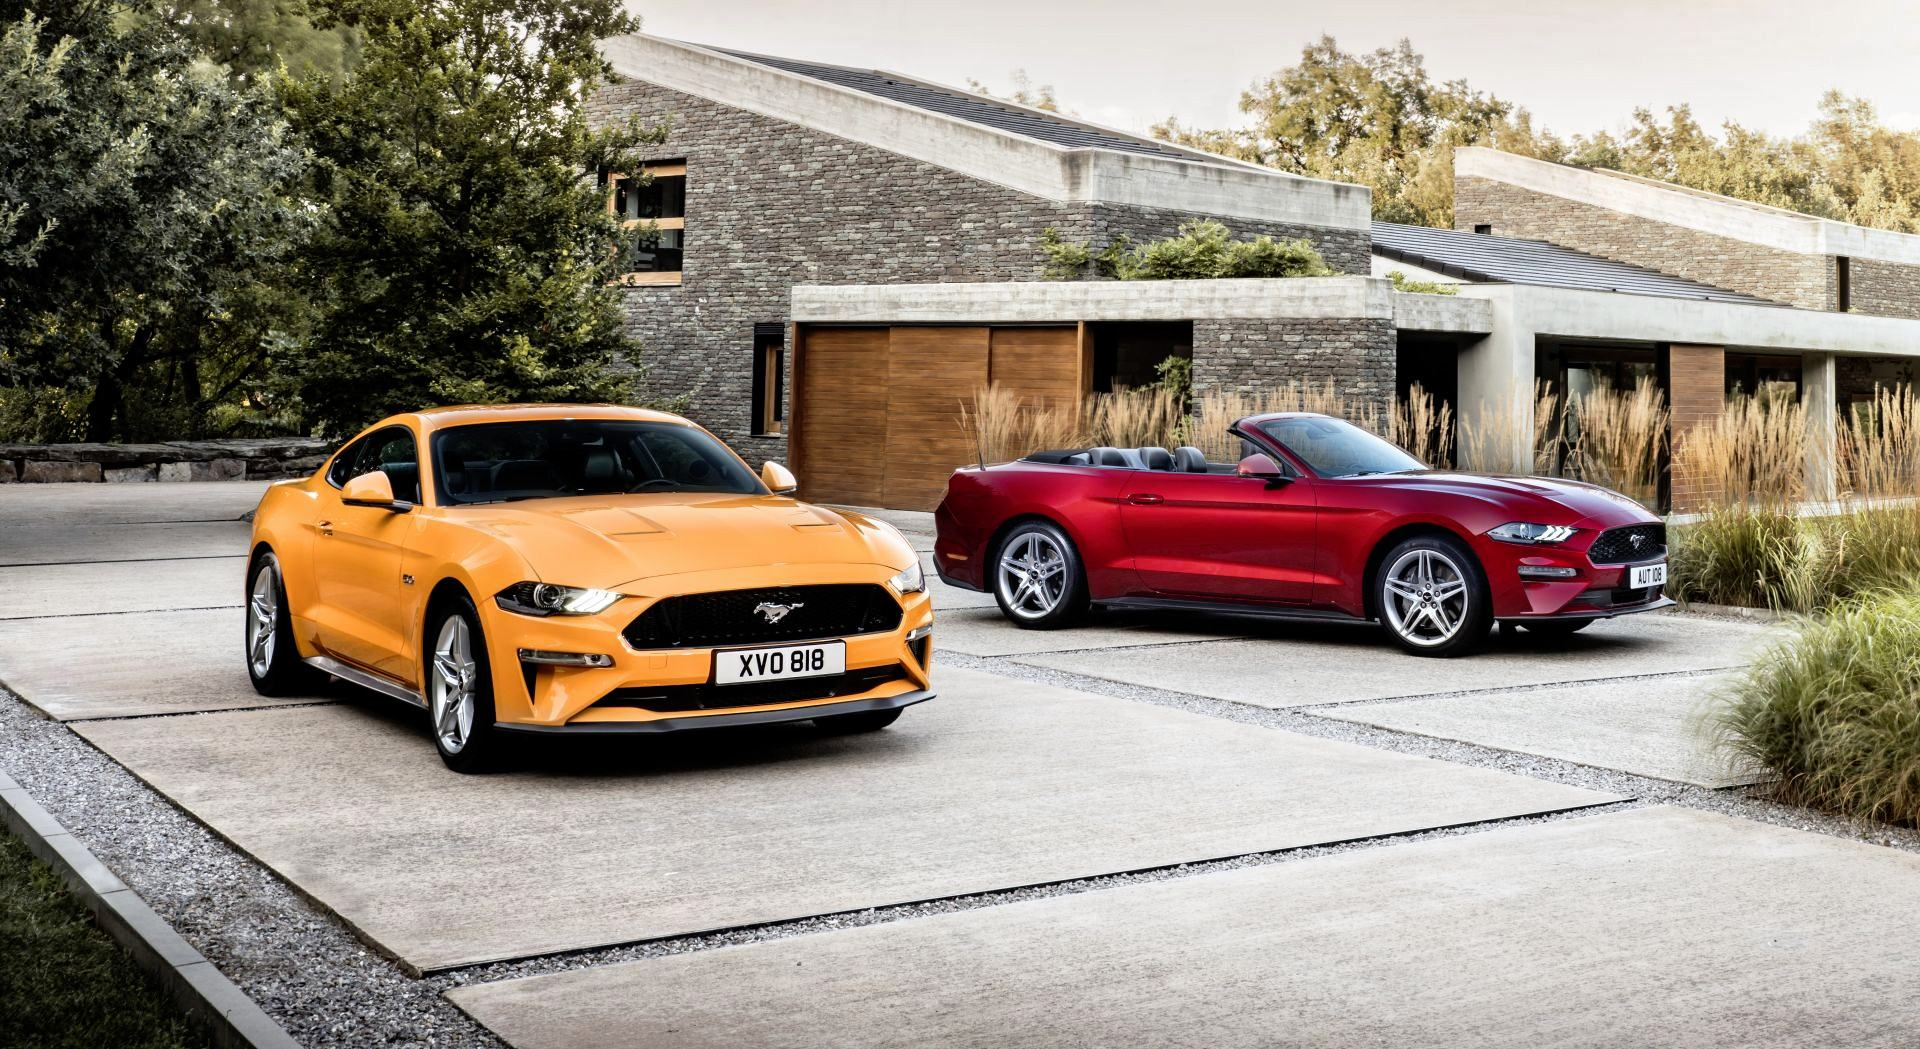 Ford Mustang coupe i cabriolet